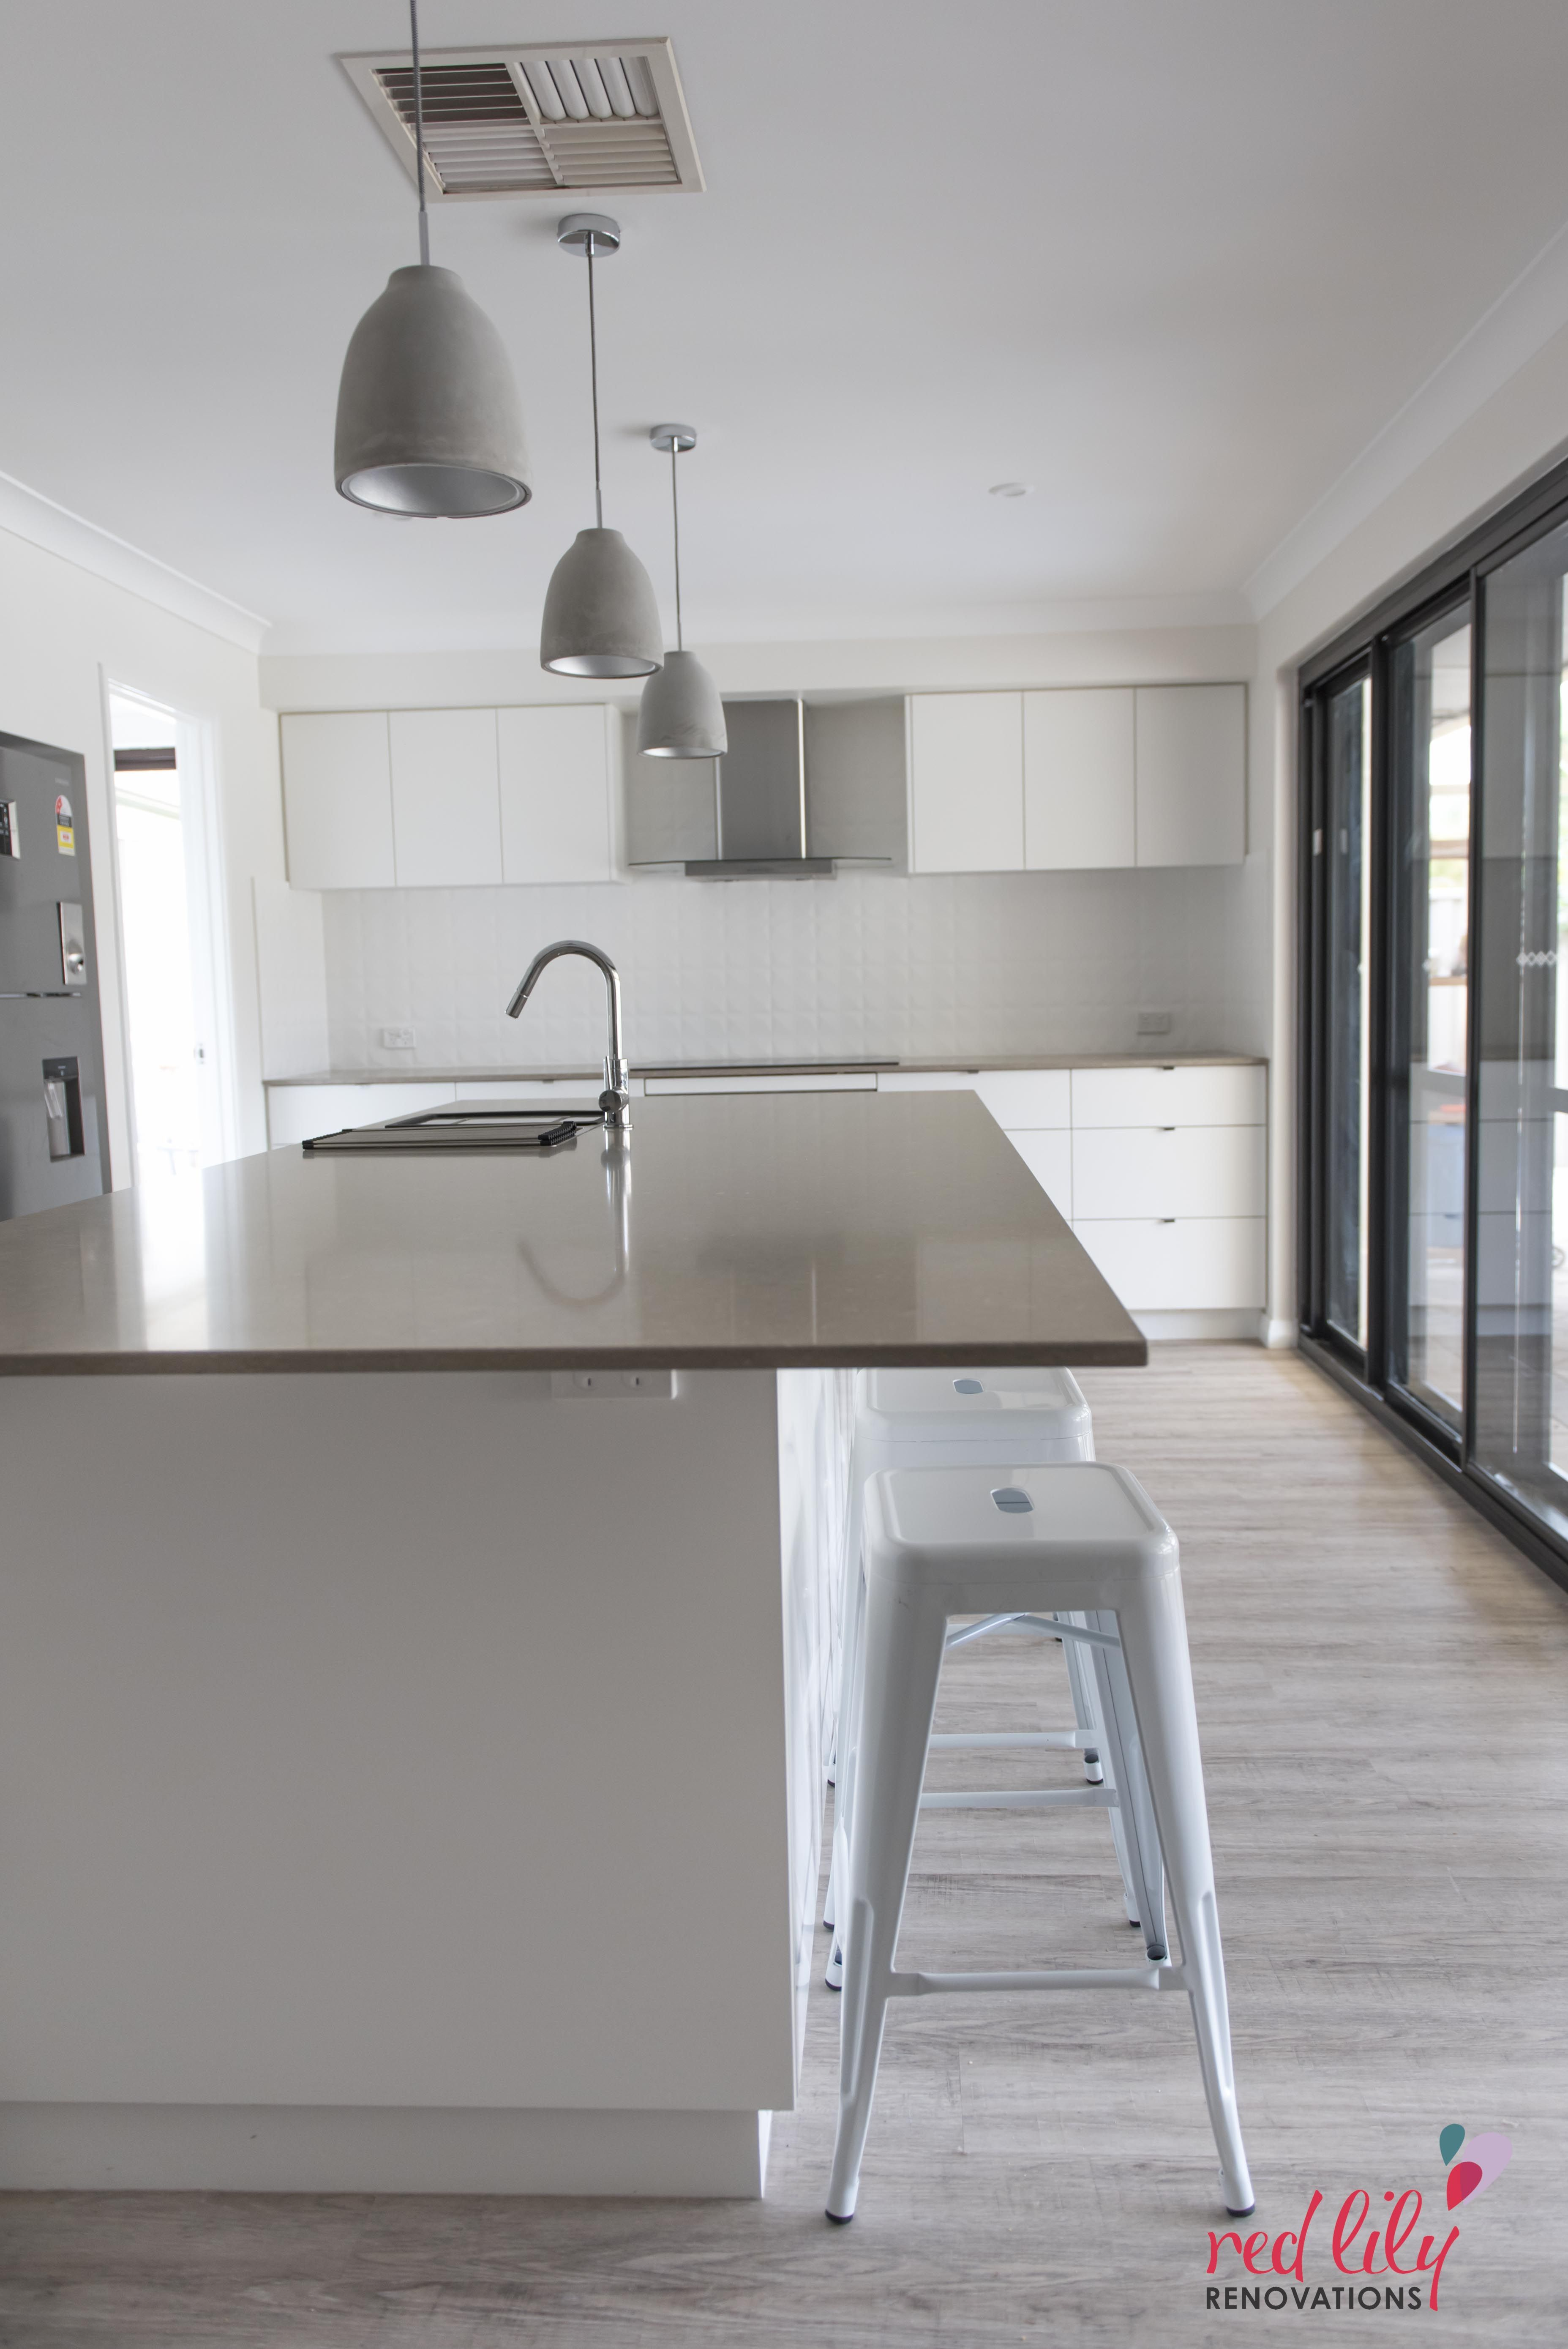 Kitchen Tiles Perth red lily renovations - perth. white kitchen with caesarstone